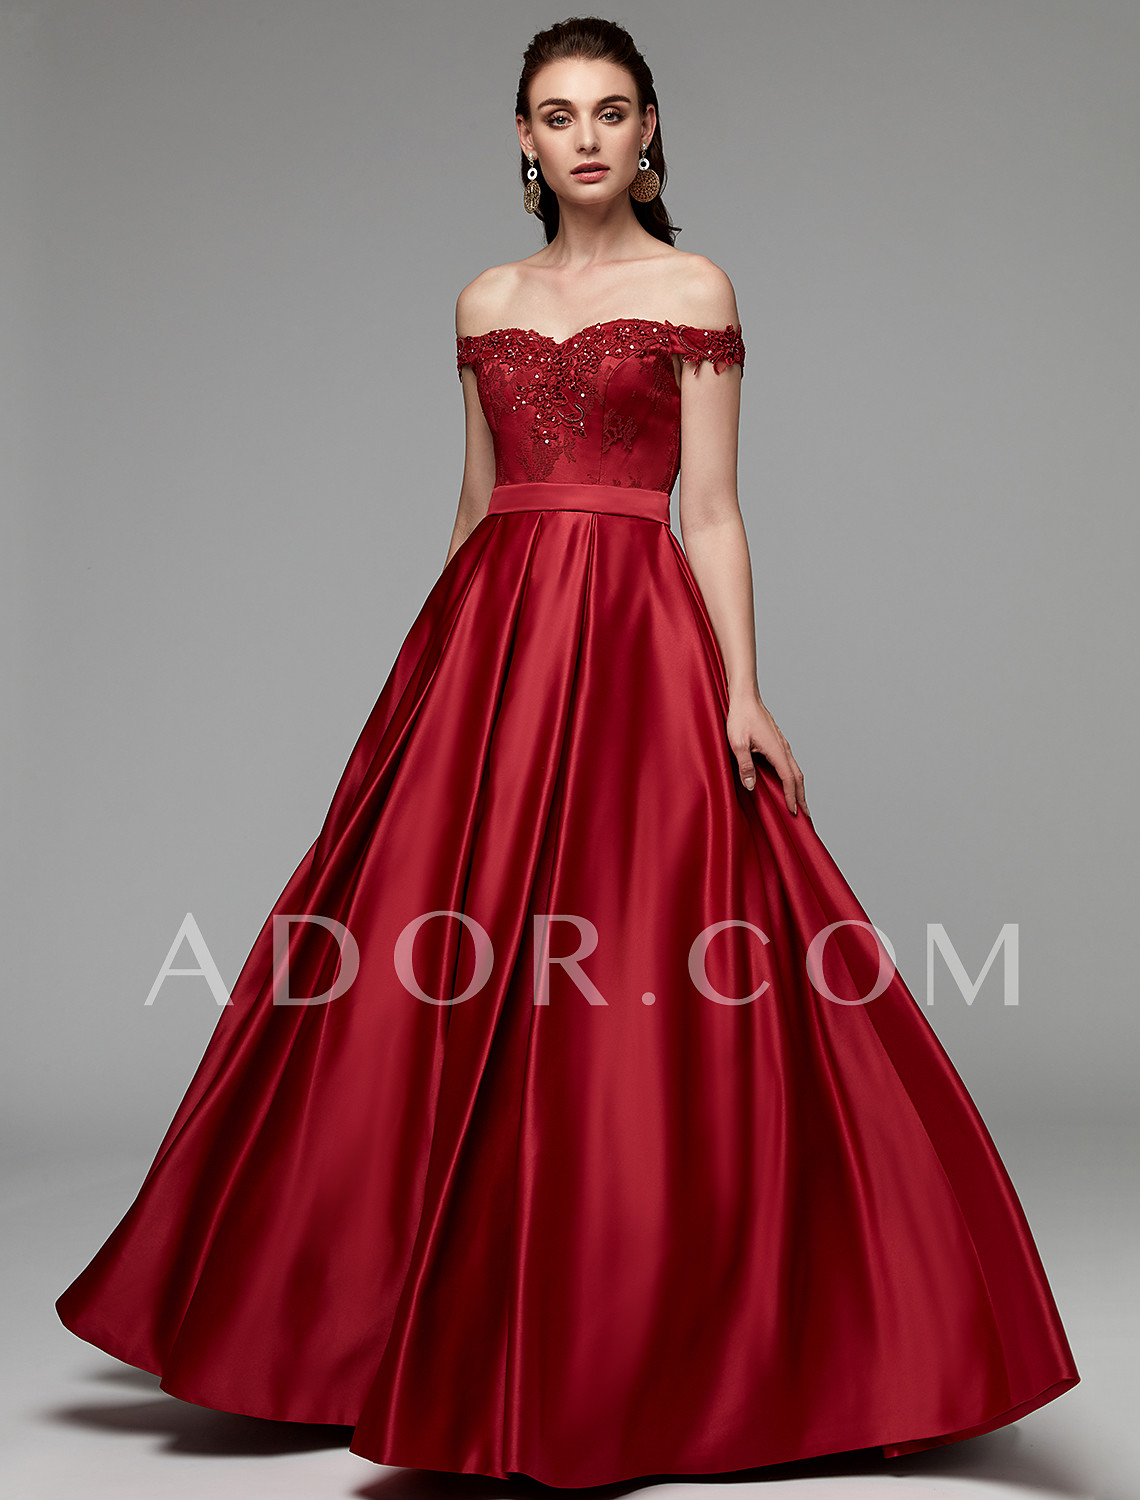 ec1c9d17acf ADOR Prom Dress A-Line Off Shoulder Floor Length Lace   Satin with Beading